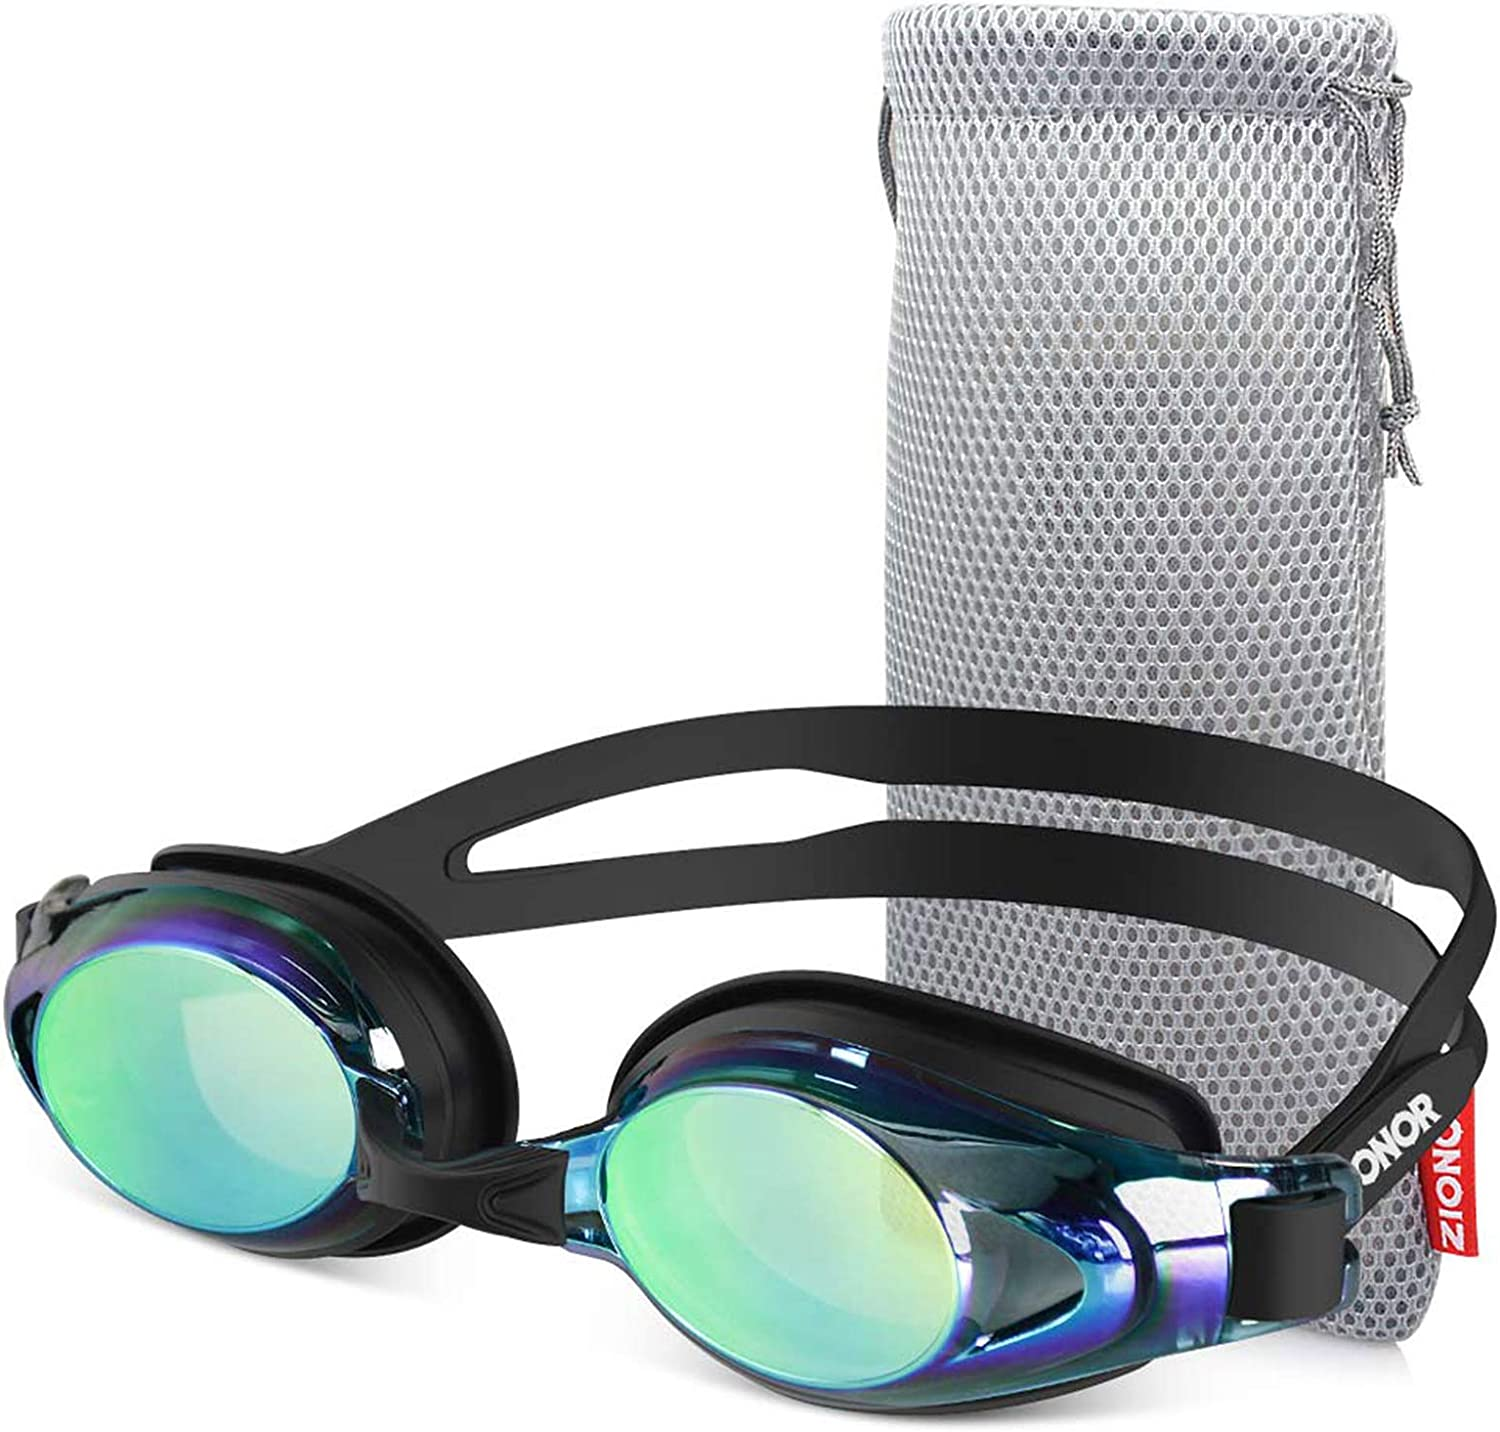 ZIONOR Swim Goggles, Upgrade G8 Swimming Goggles for Adult Men Women Youth, UV Protection Anti-Fog Leakproof (Black Frame Gold Lens) : Sports & Outdoors